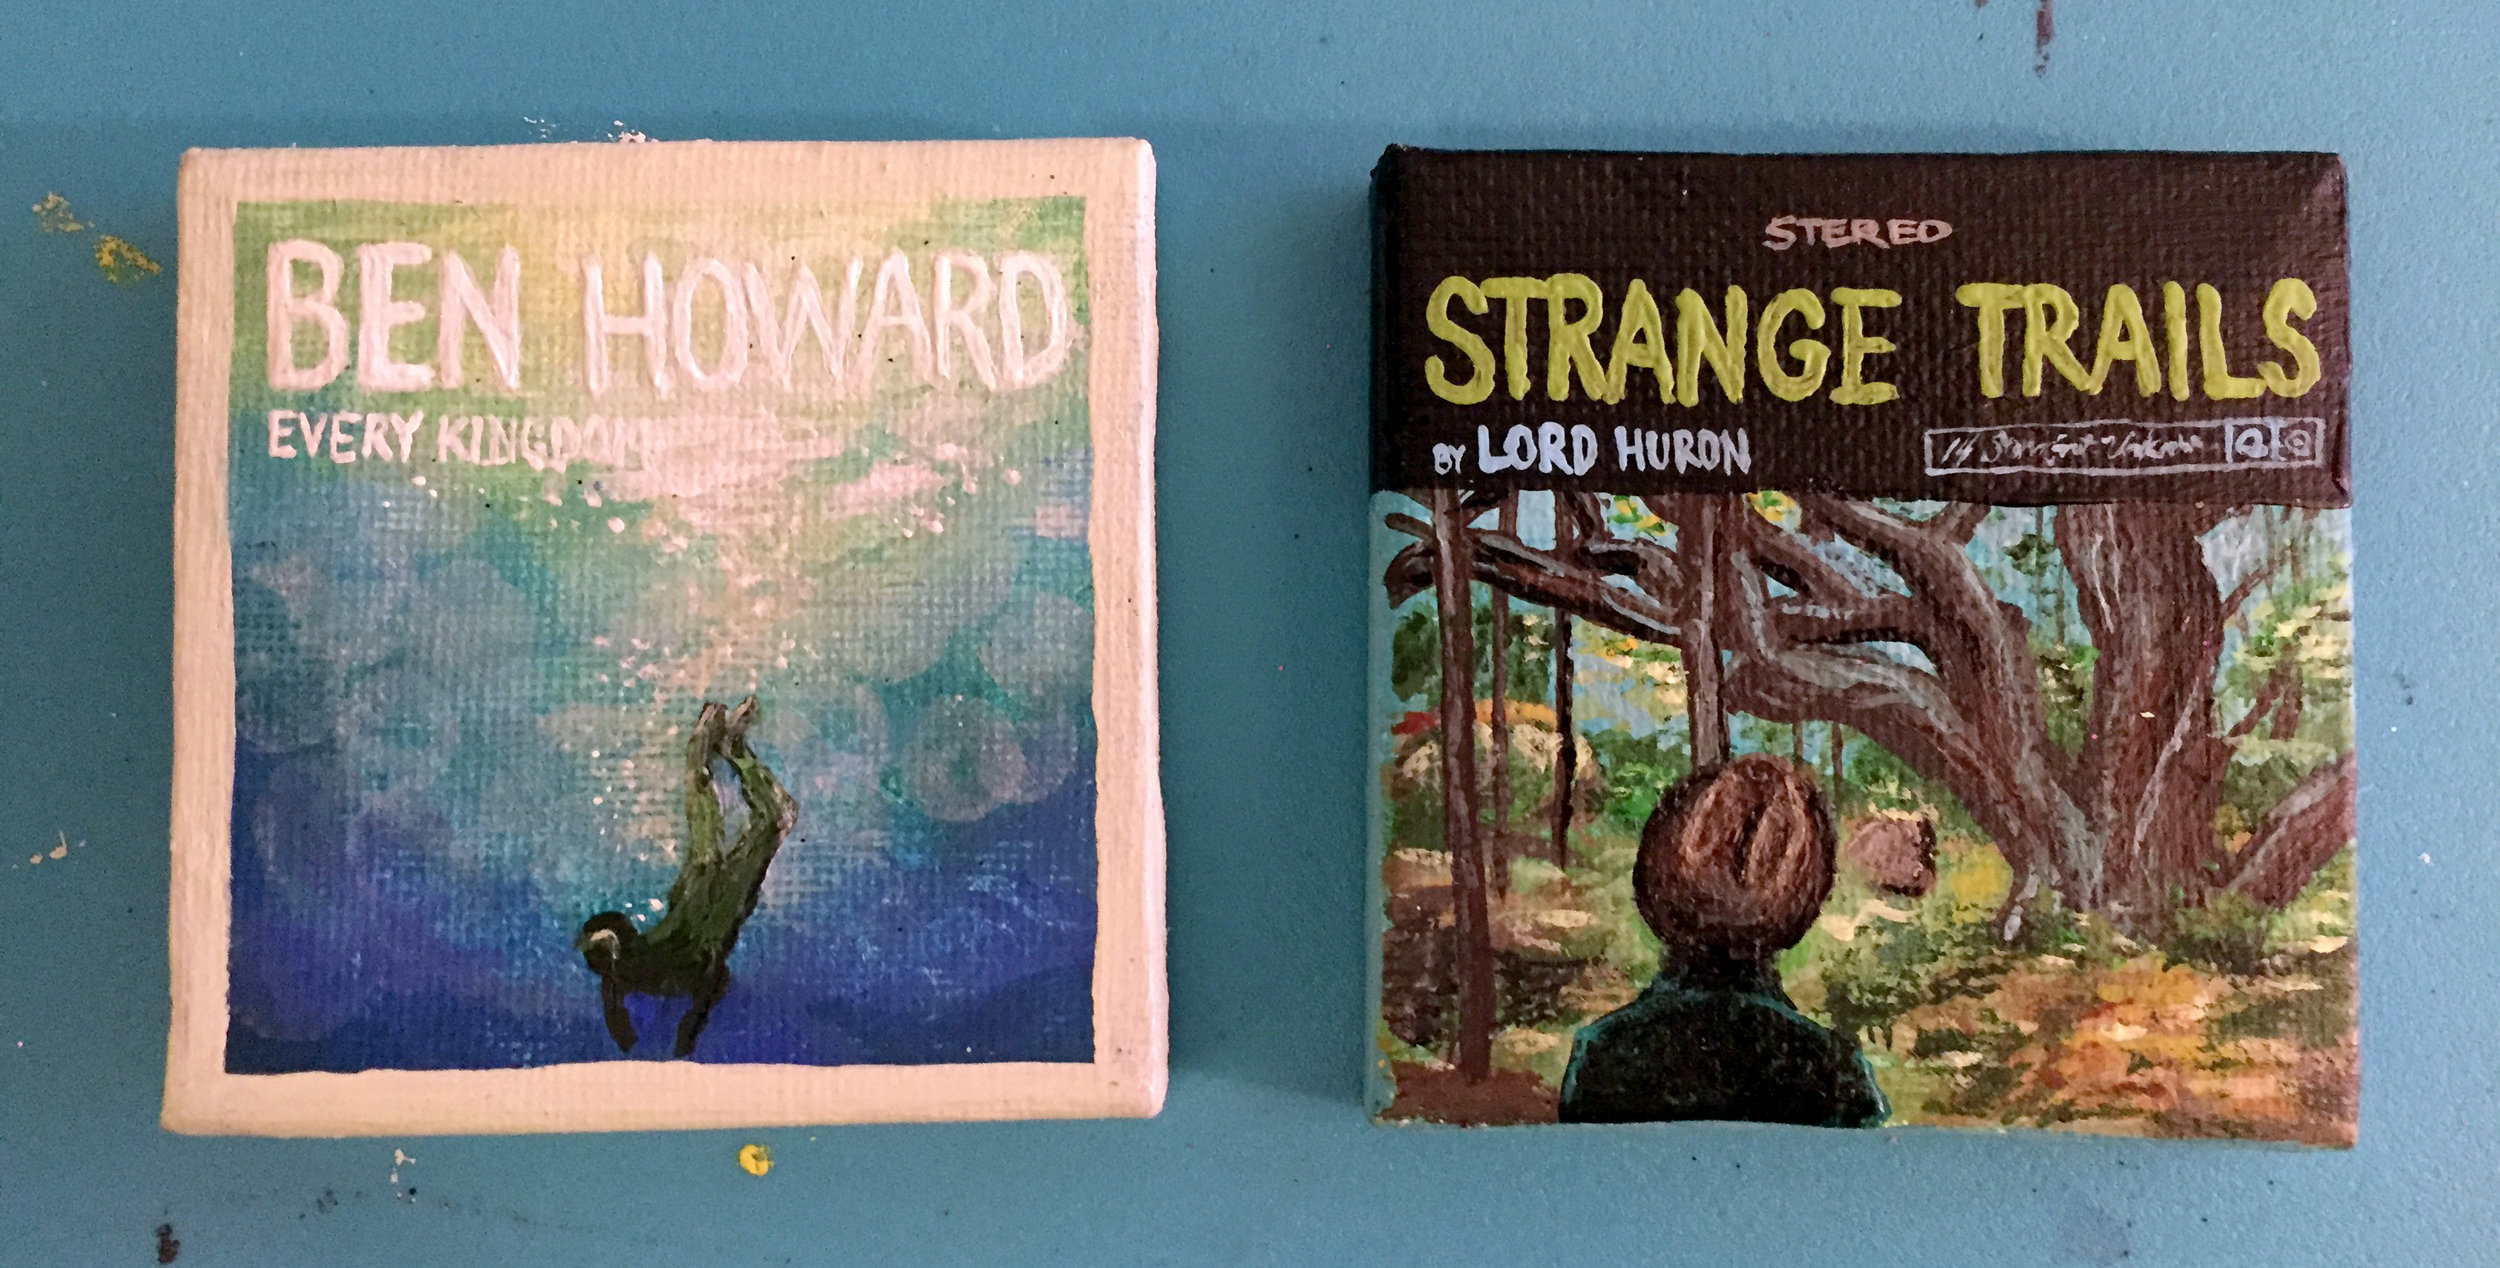 """Miniature Ben Howard and Lord Huron album covers  2""""x2"""" acrylic on canvas."""